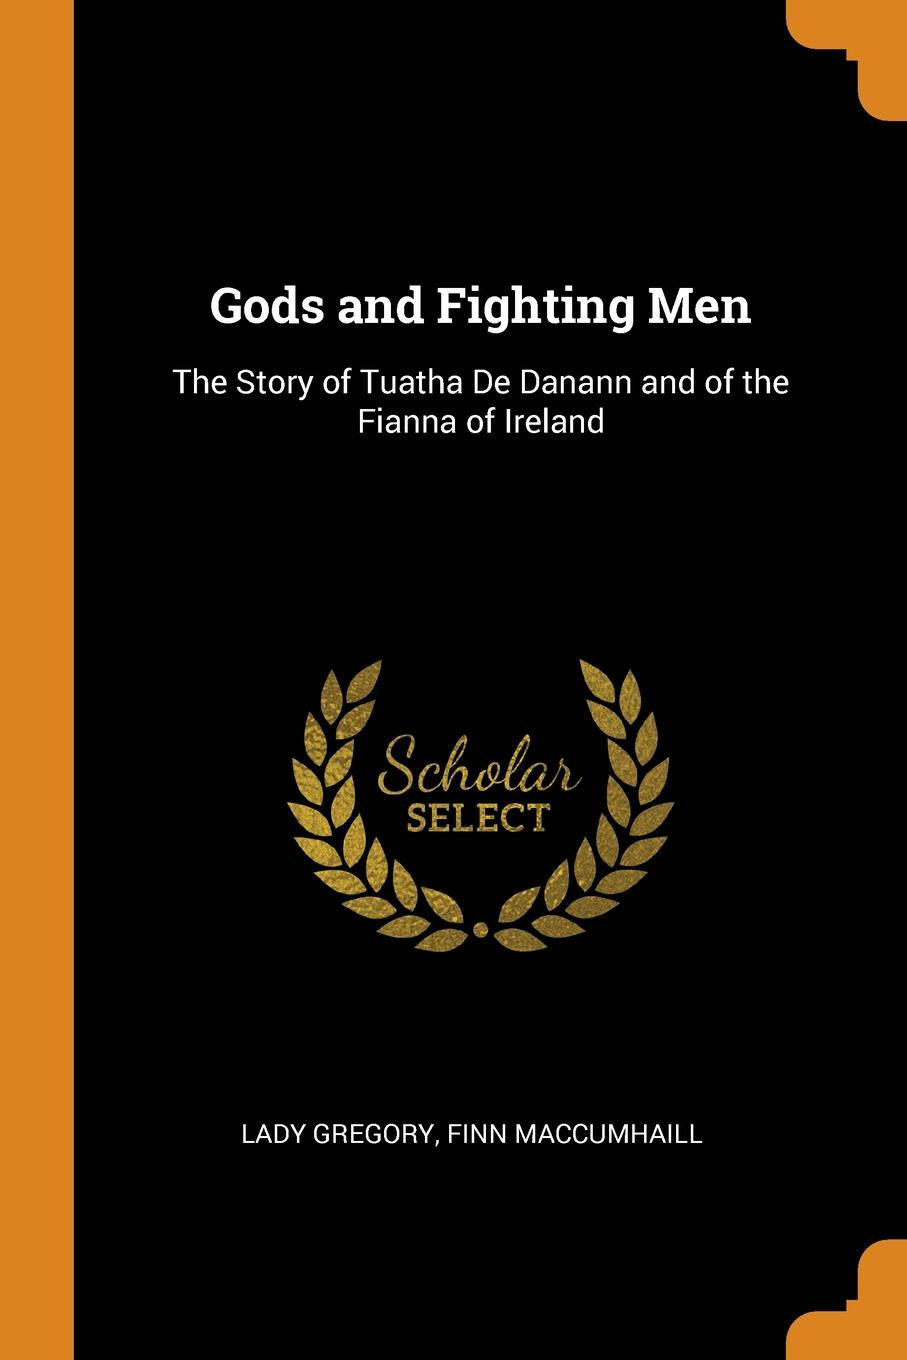 Lady Gregory, Finn MacCumhaill. Gods and Fighting Men. The Story of Tuatha De Danann and of the Fianna of Ireland